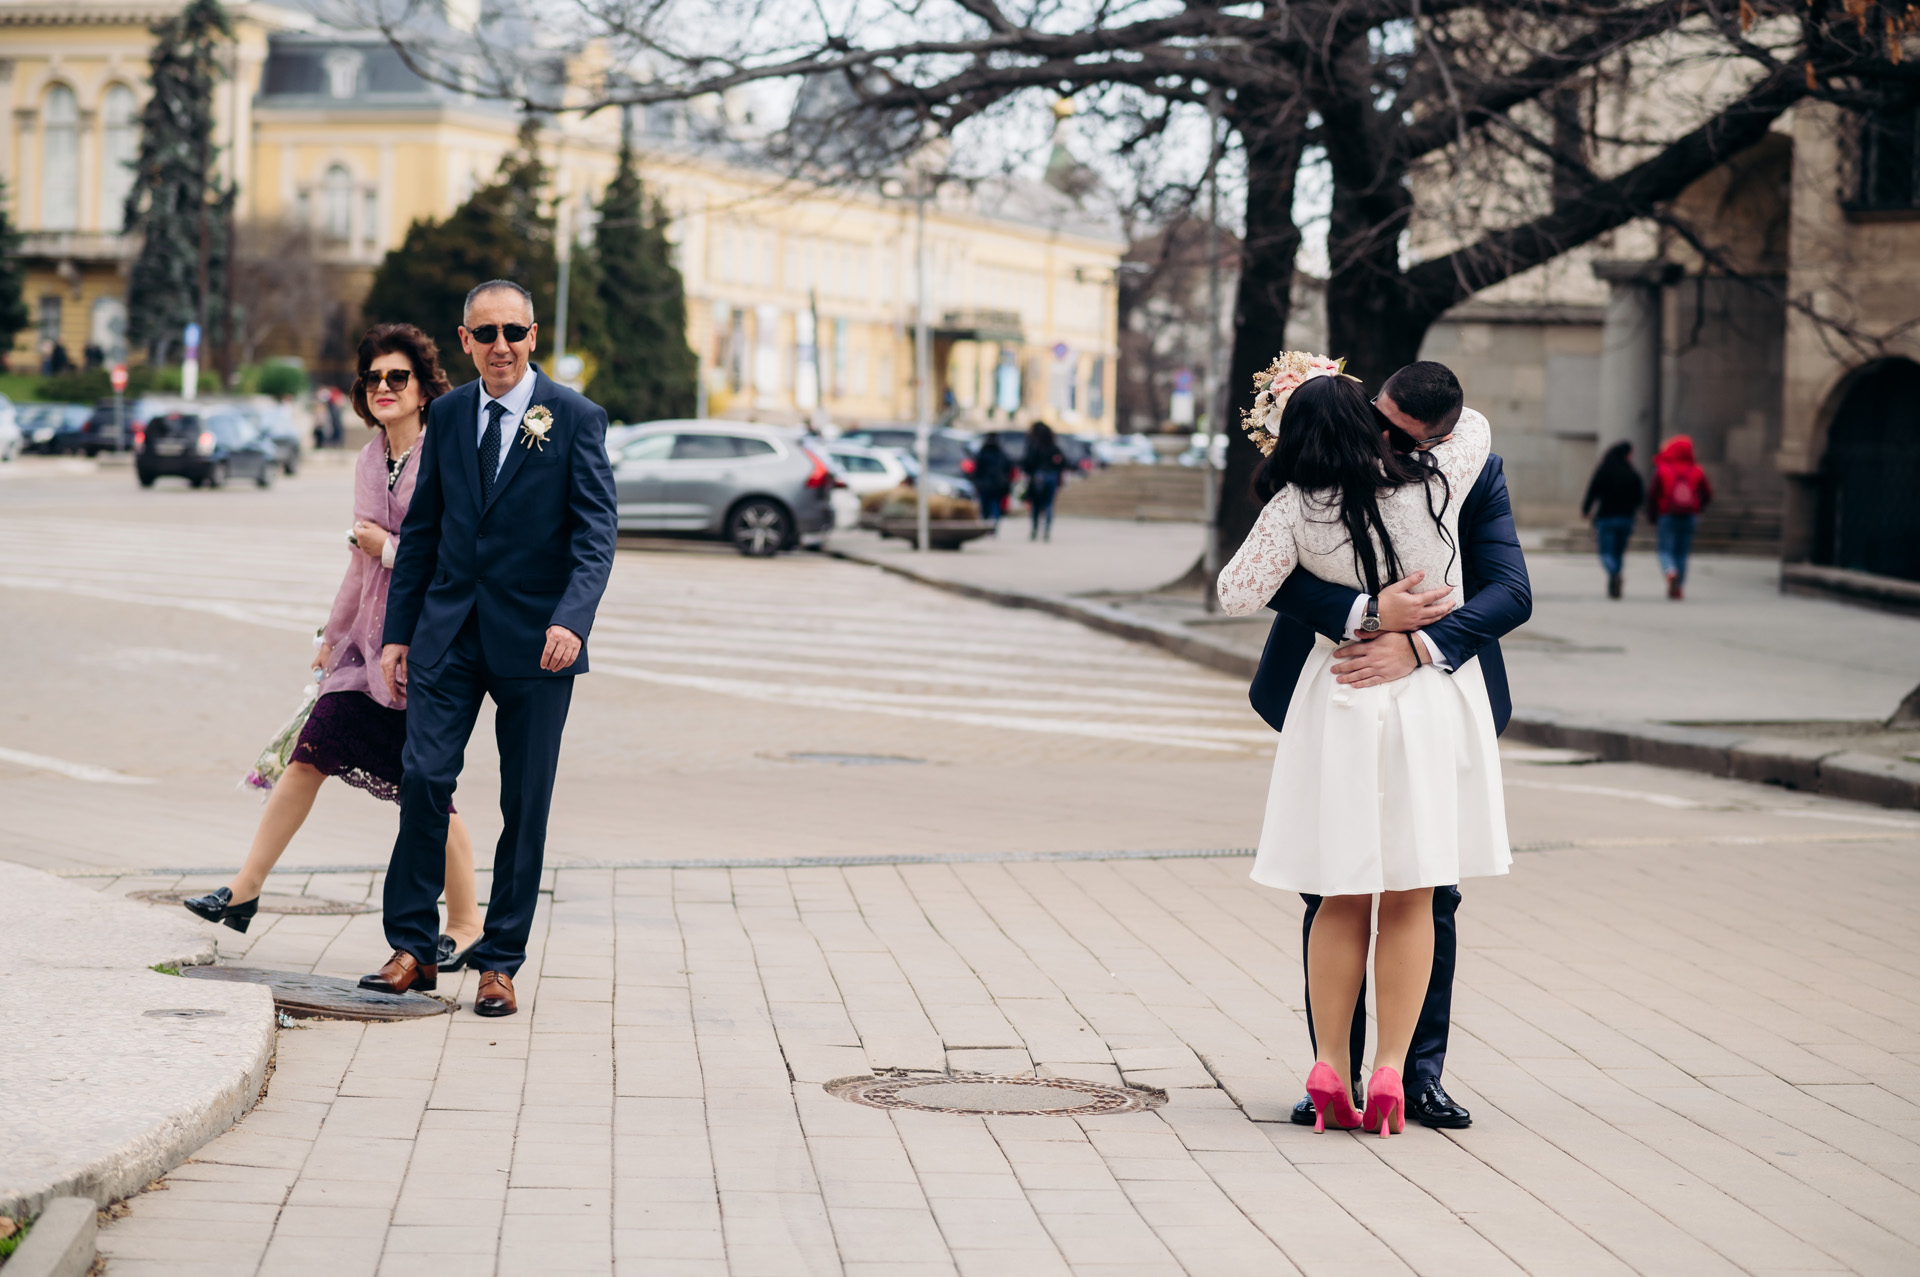 Photographers in Sofia for Weddings | The bride and groom embrace on the street